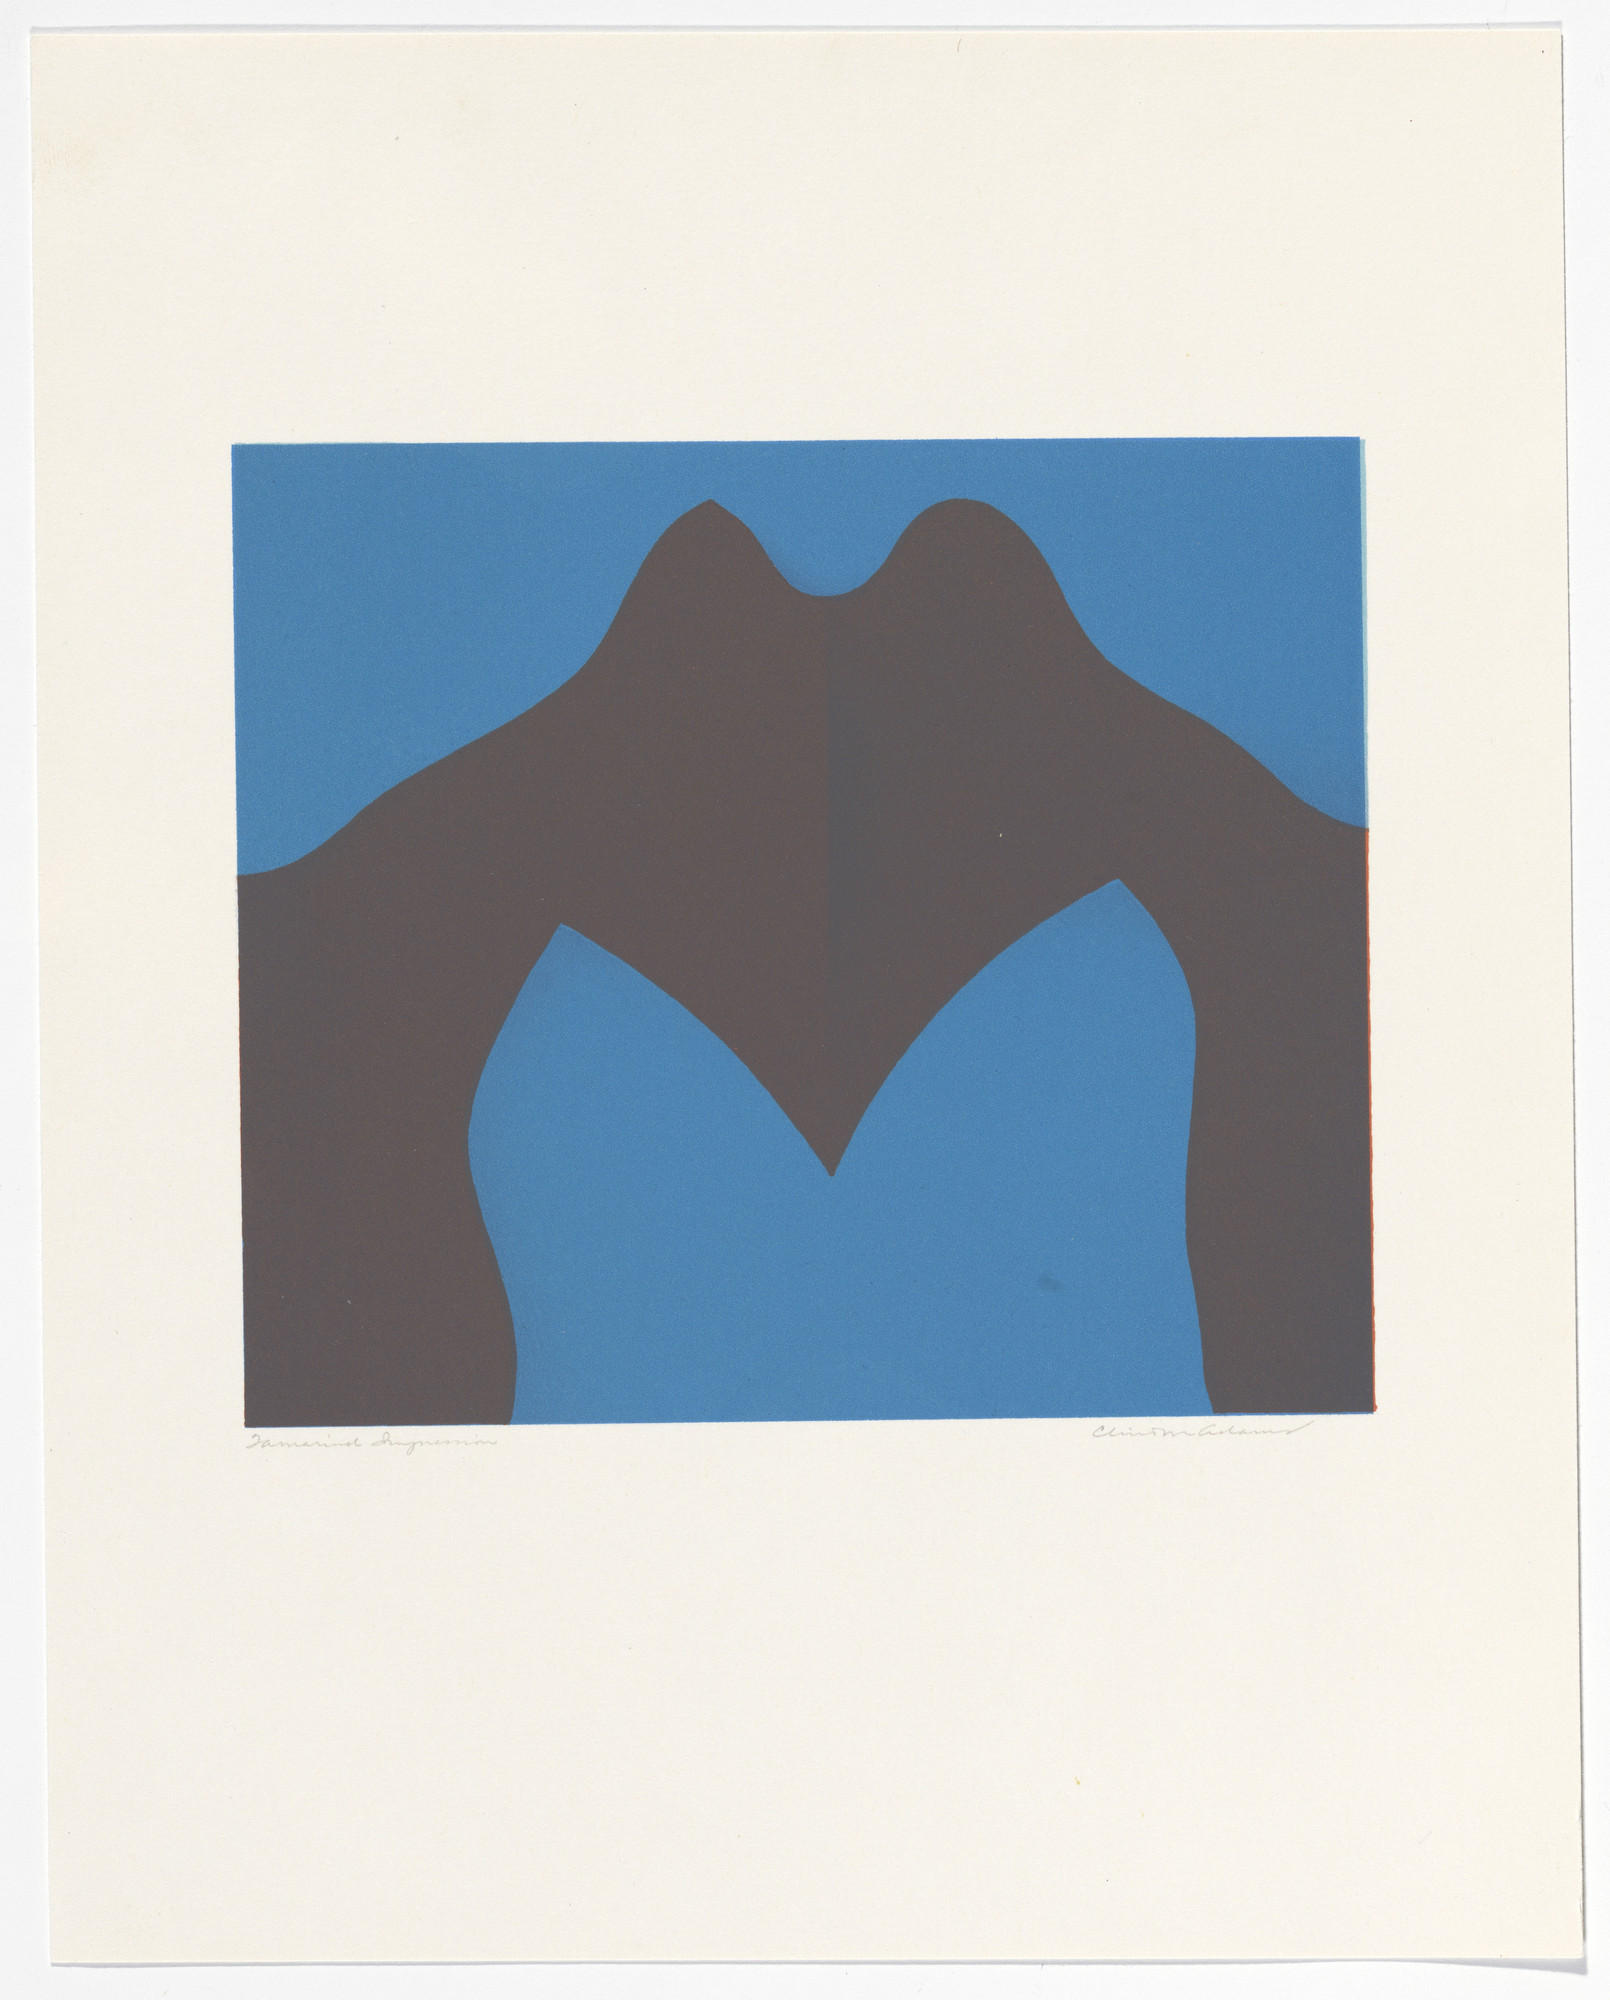 Clinton Adams. Cibola Series (Blue). 1968–69